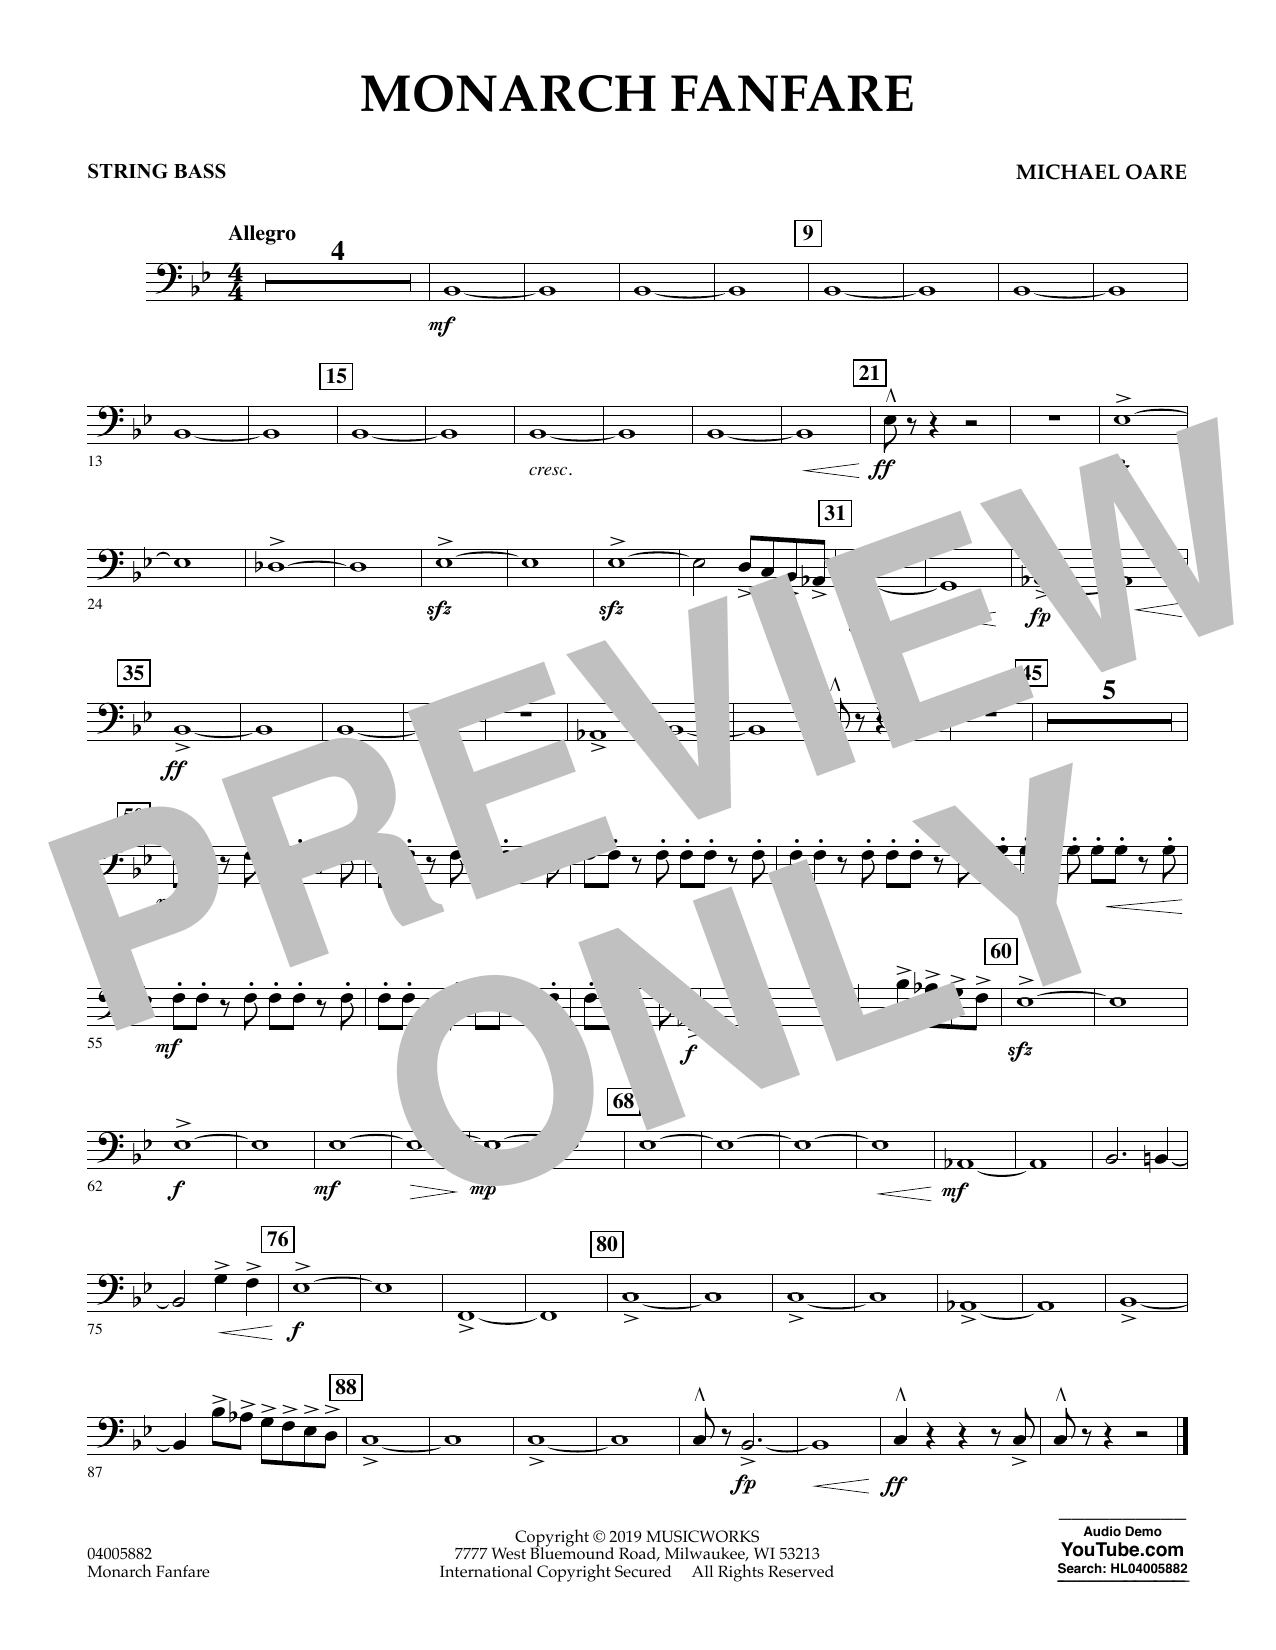 Michael Oare Monarch Fanfare - String Bass sheet music preview music notes and score for Concert Band including 1 page(s)